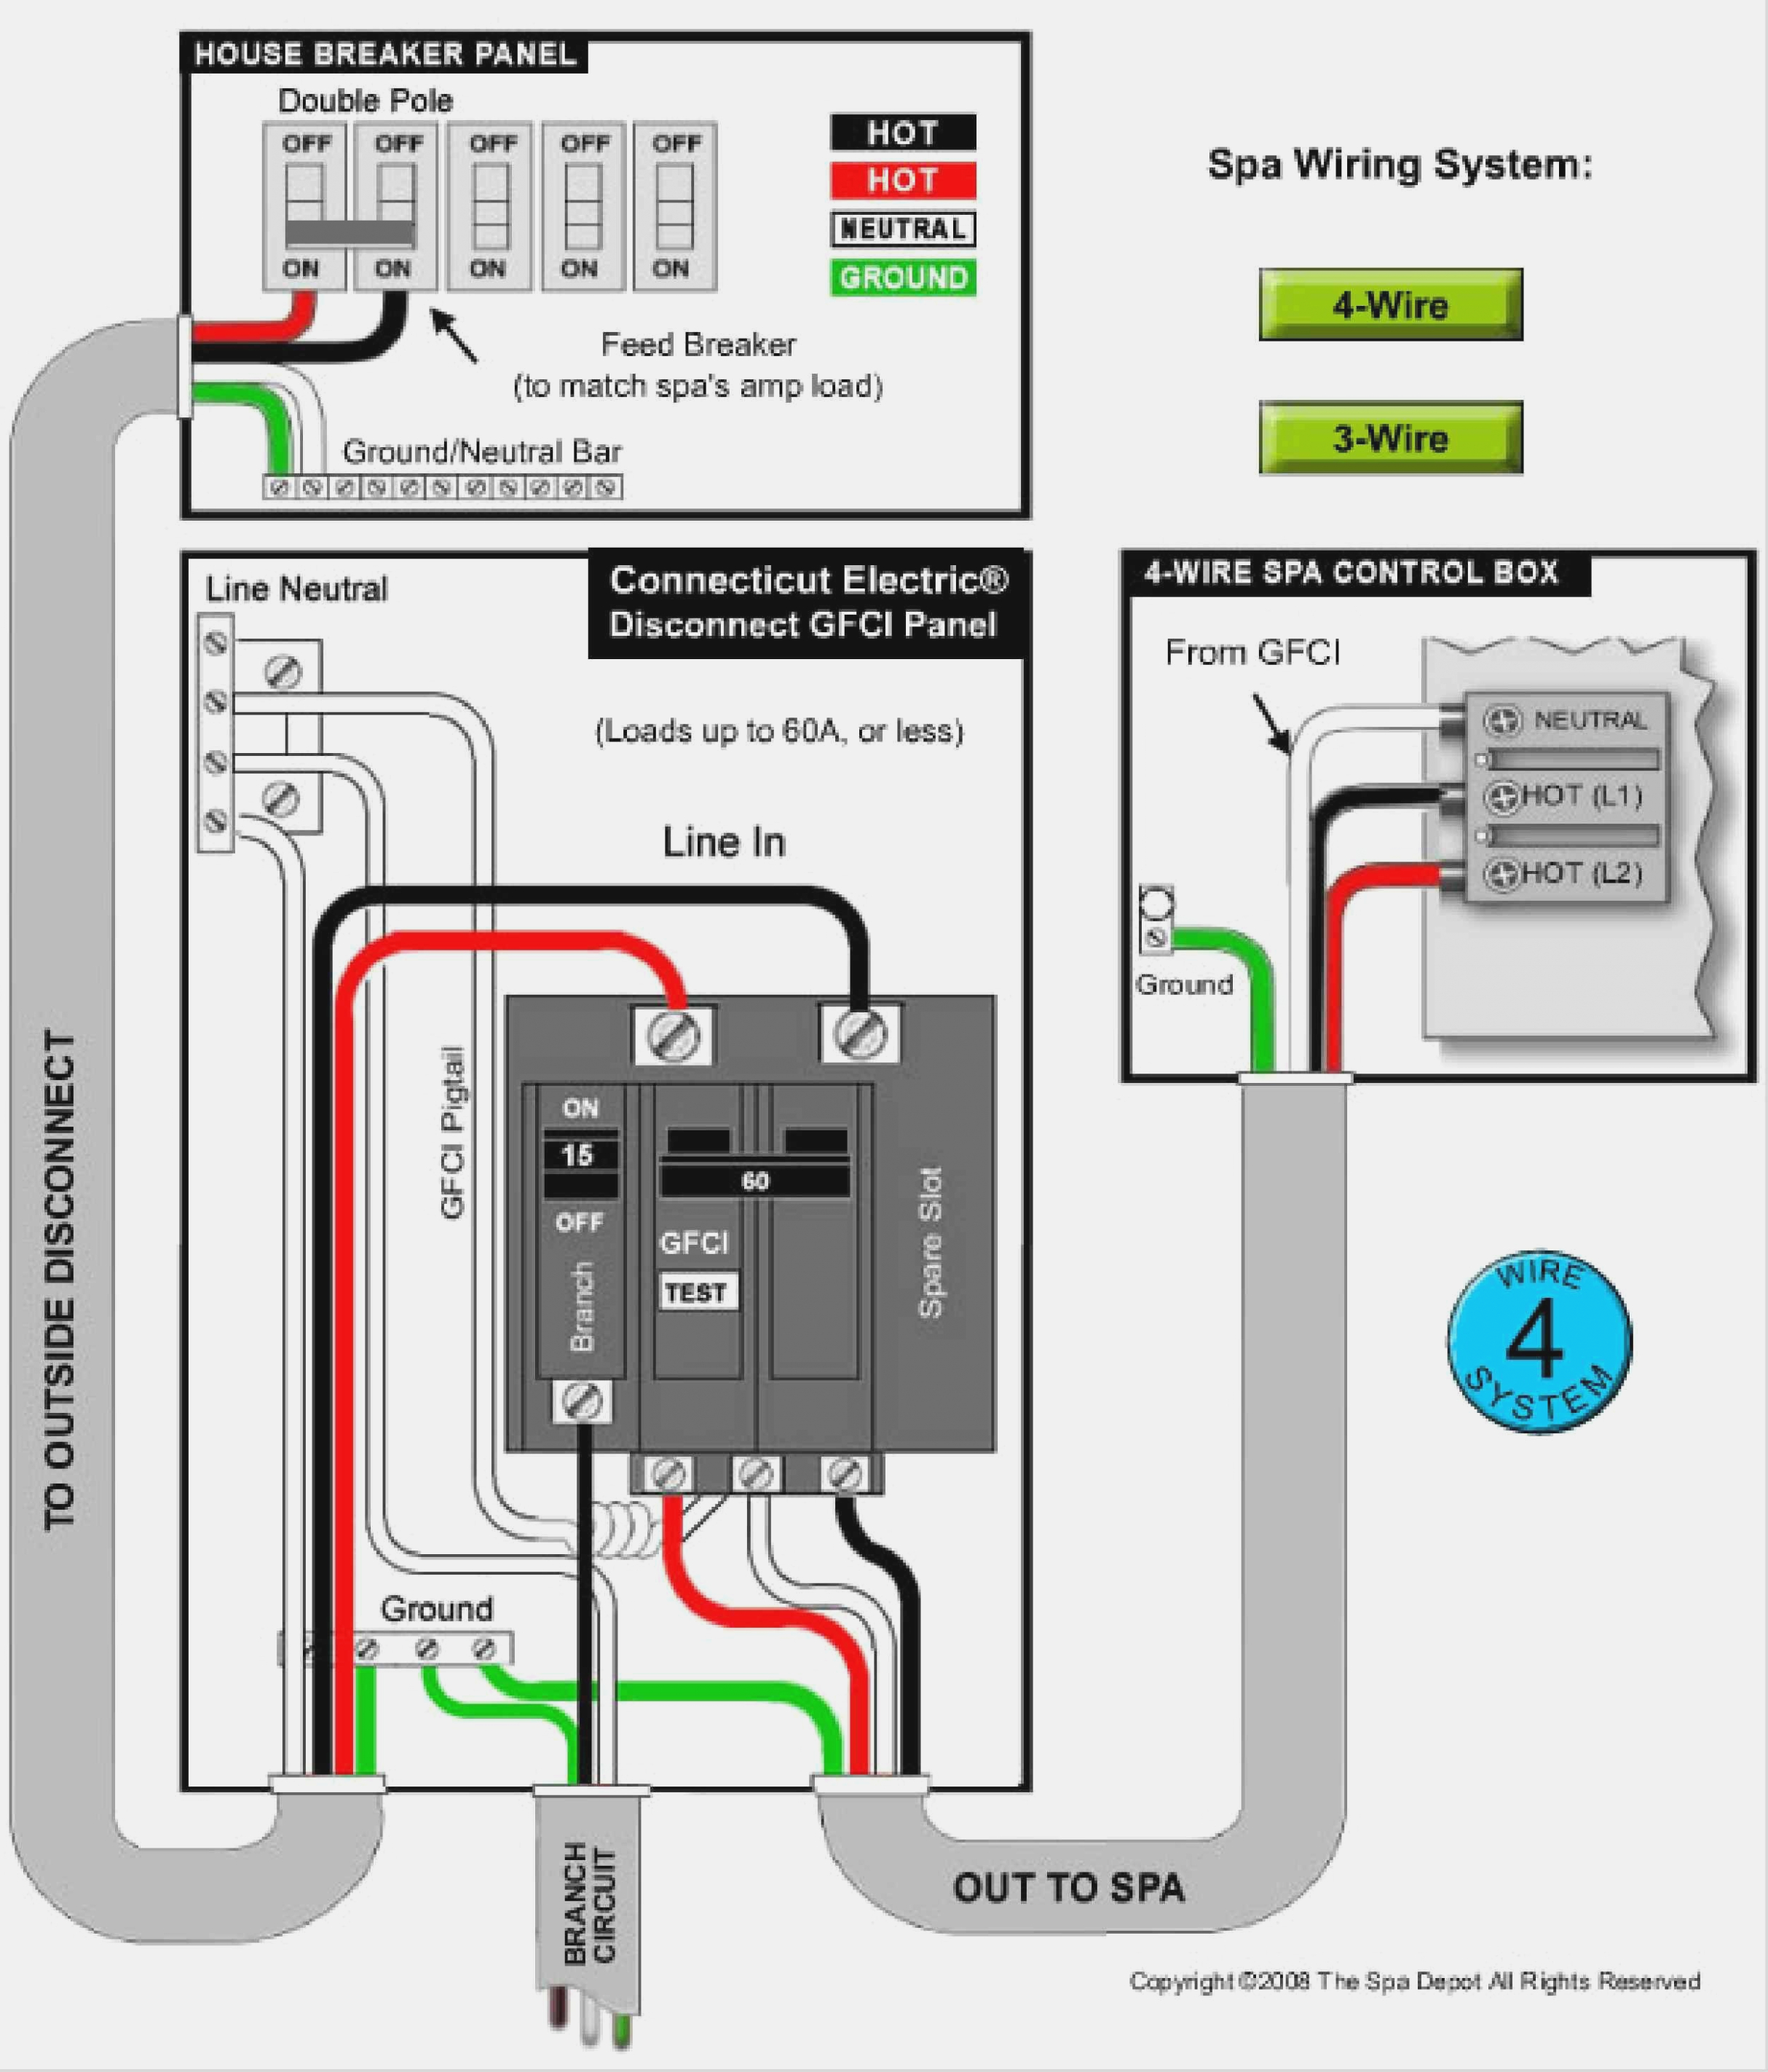 2 Pole Circuit Breaker Wiring Diagram - Electrical Schematic Wiring - Double Pole Circuit Breaker Wiring Diagram